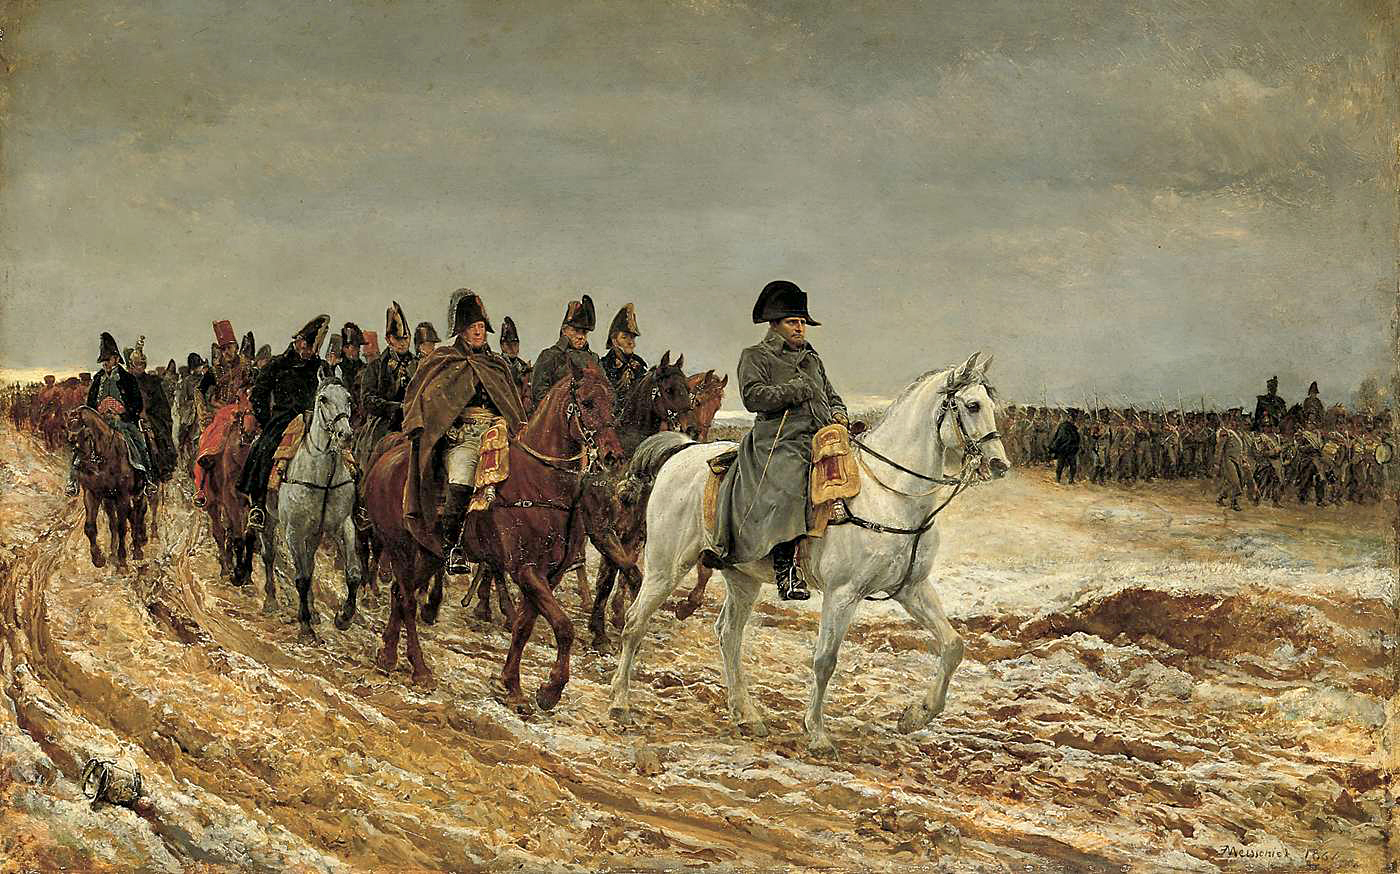 https://upload.wikimedia.org/wikipedia/commons/5/53/Meissonier_-_1814%2C_Campagne_de_France.jpg